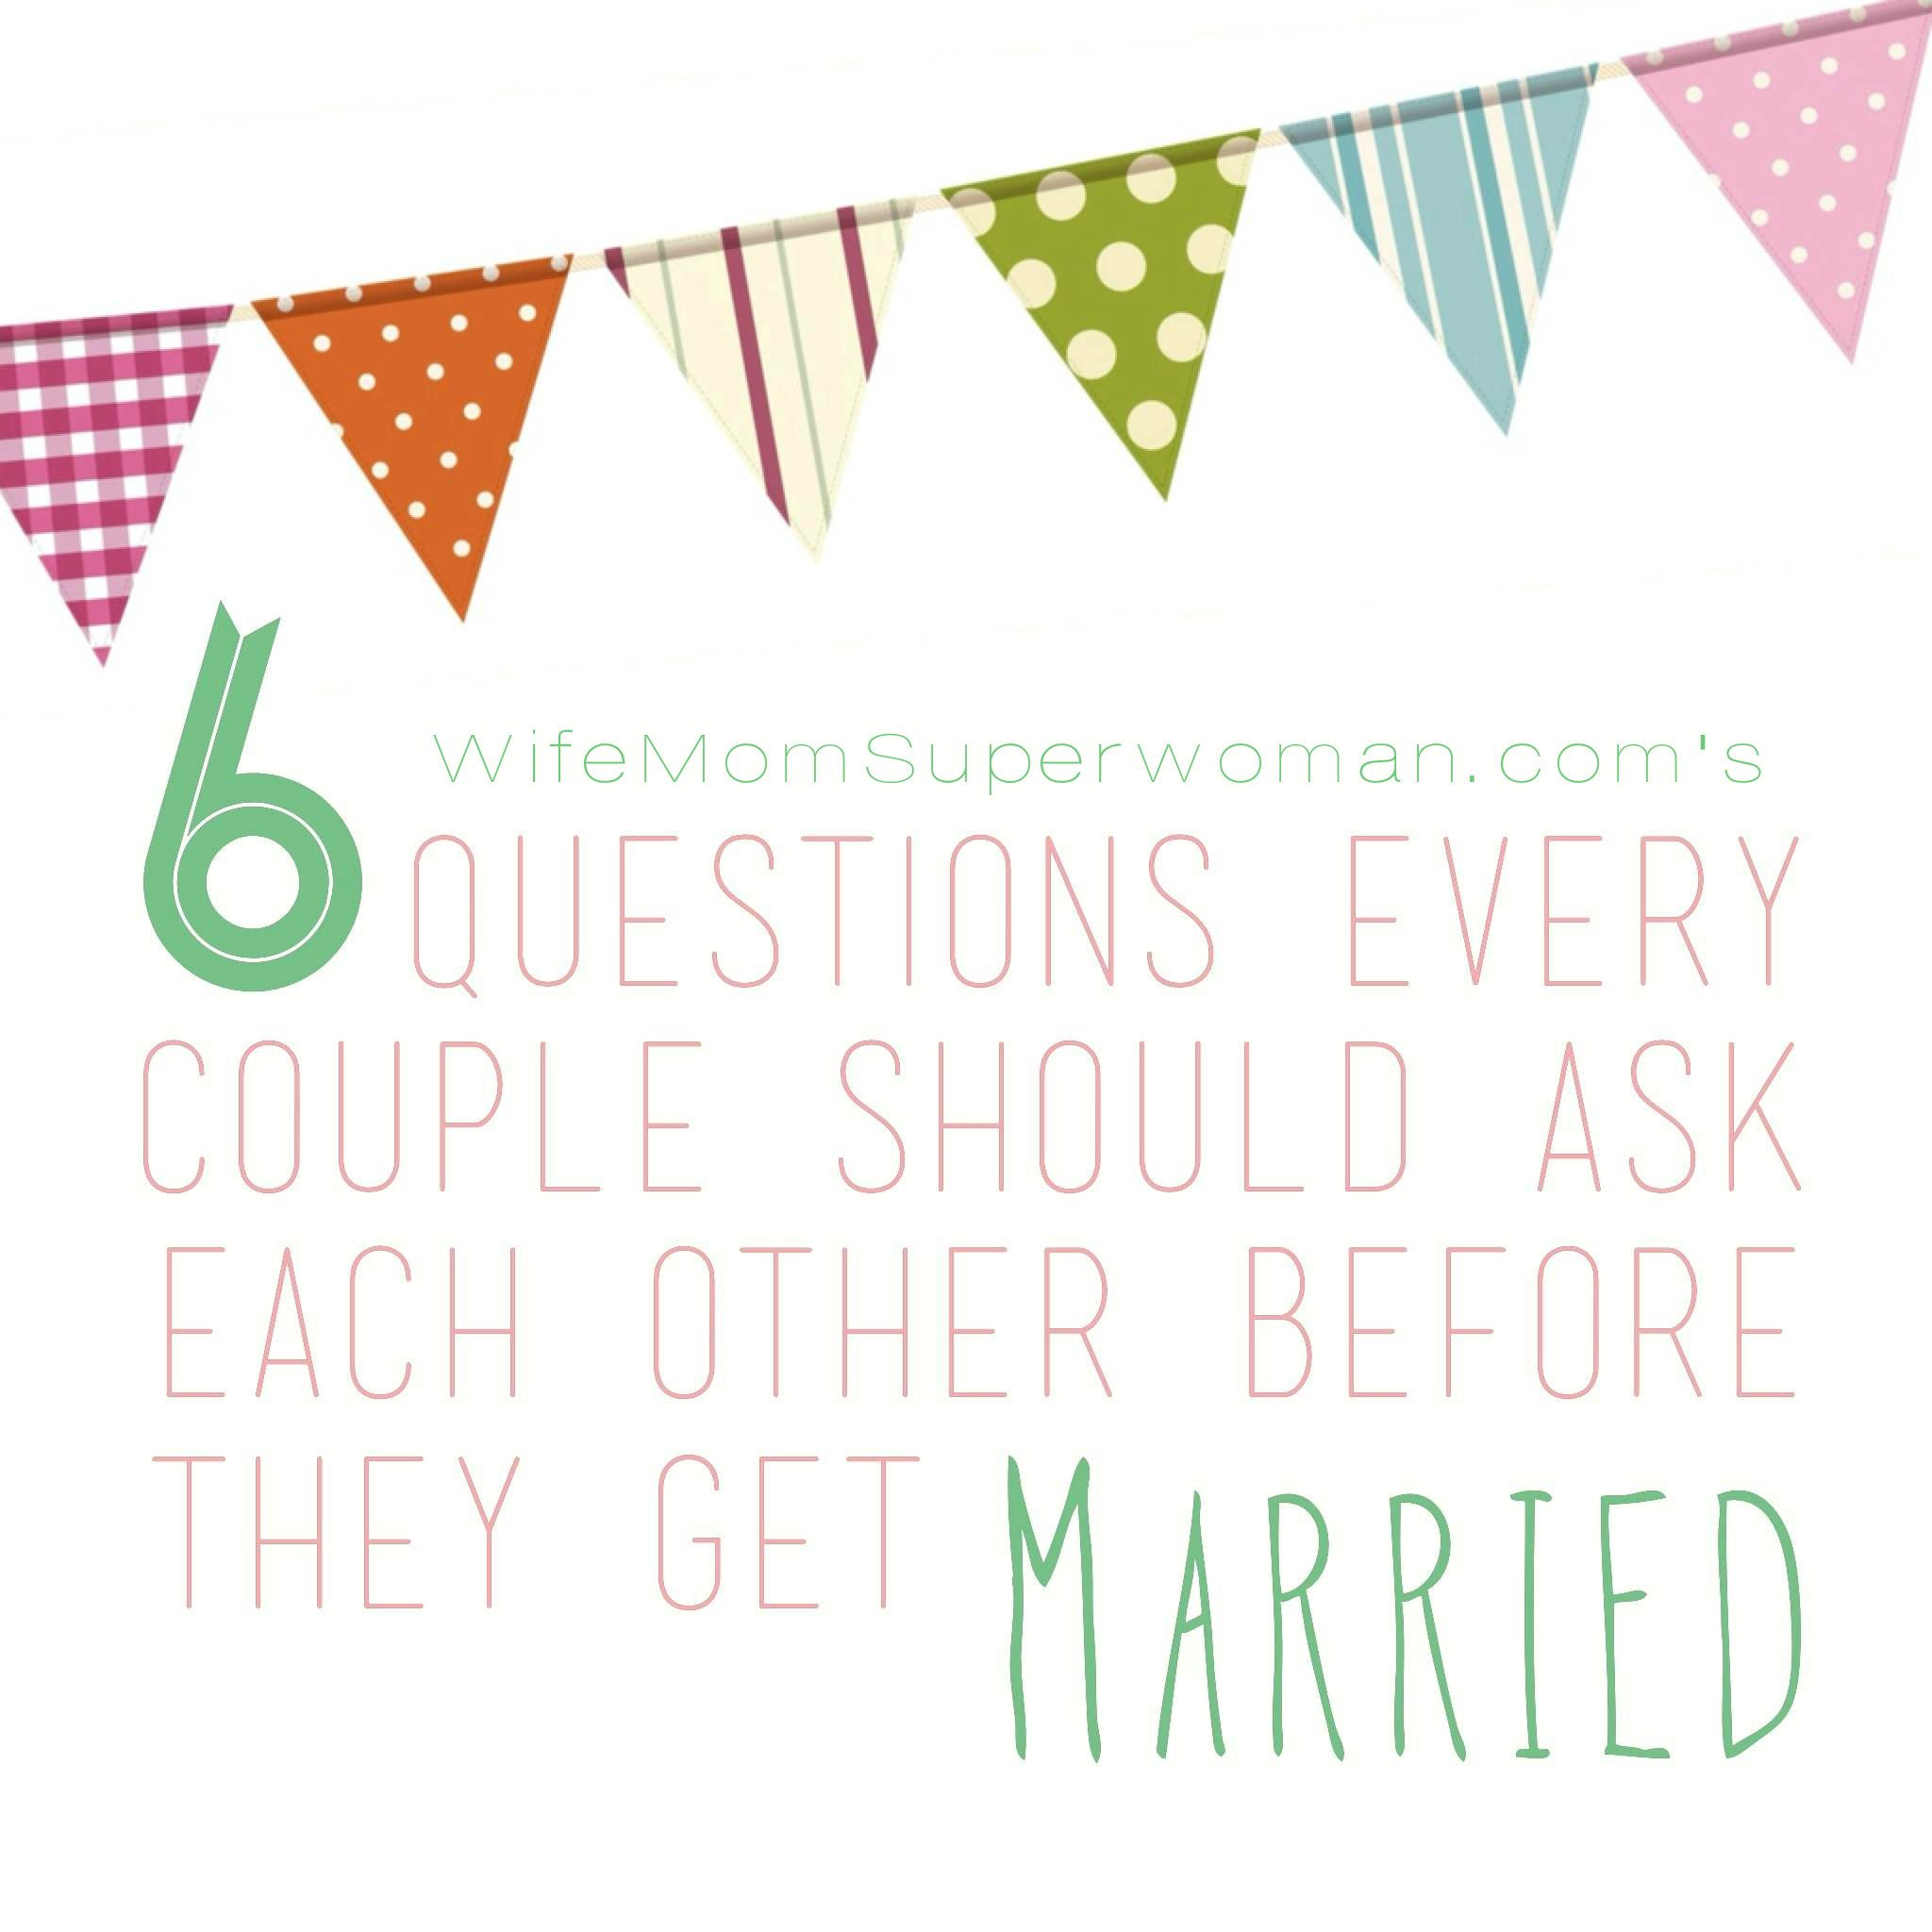 SIX Questions Every Couple Should Ask Each Other Before